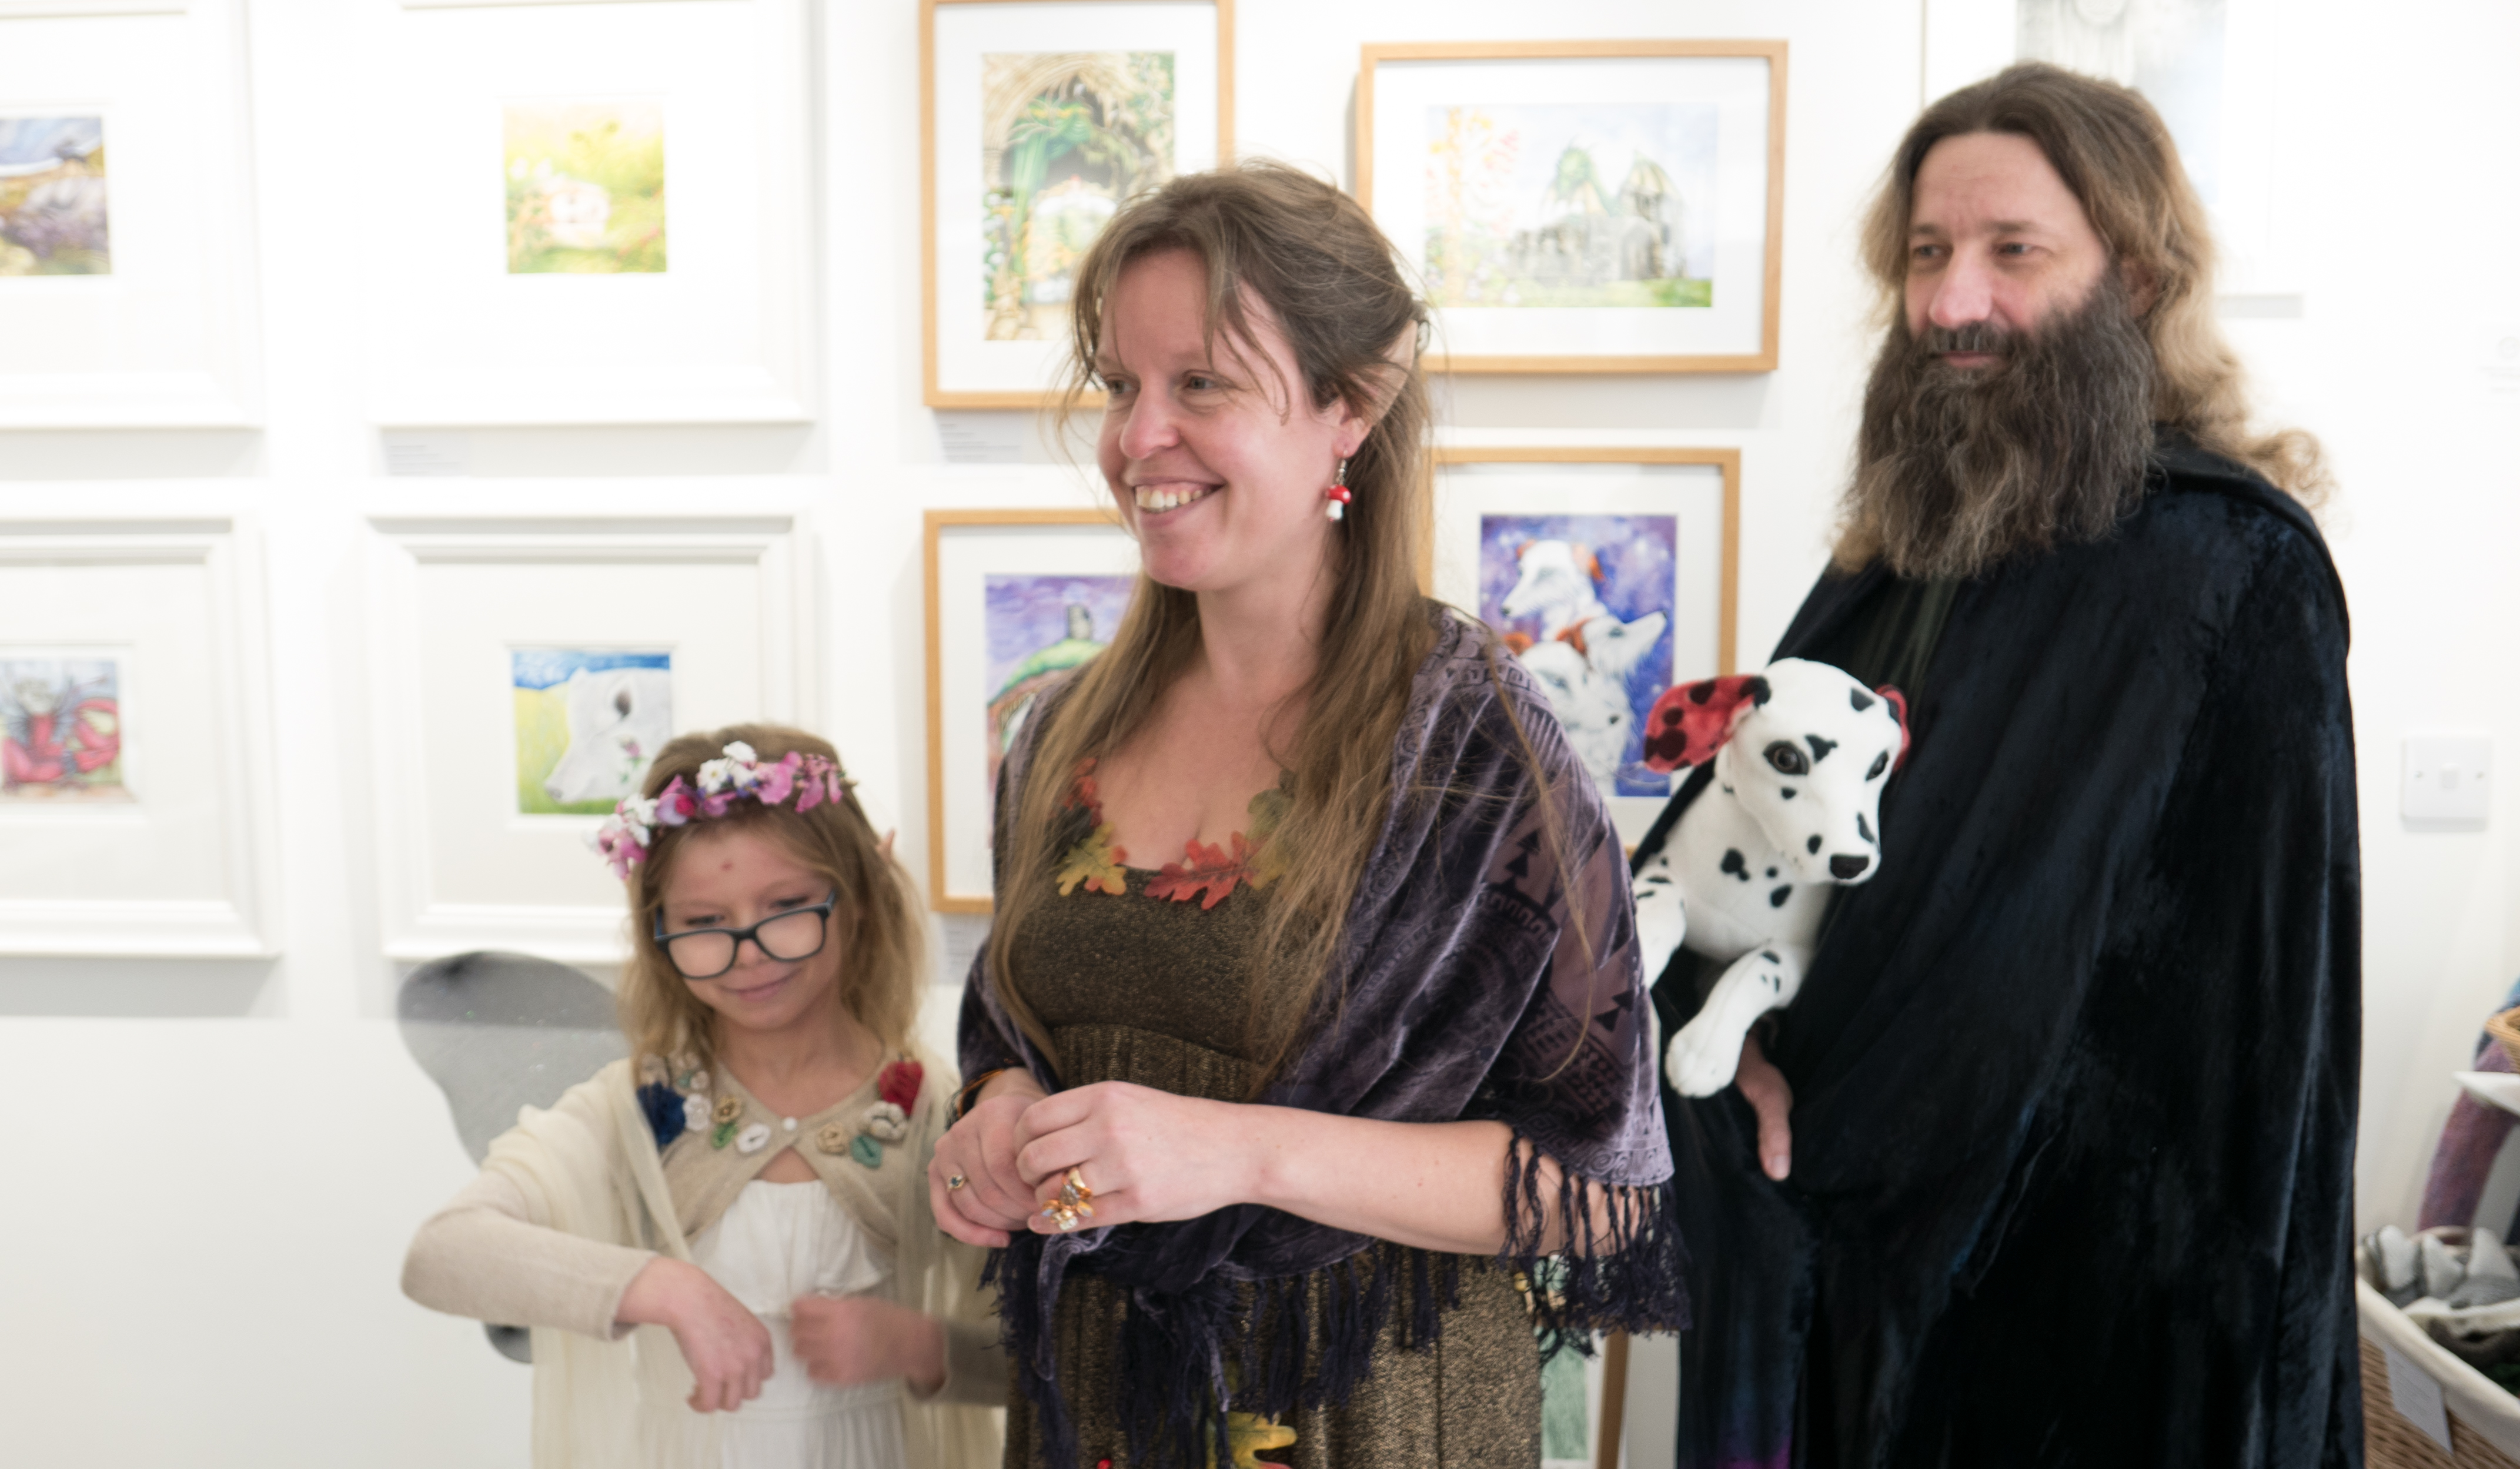 Katy Jones with family at the launch with her works behind.